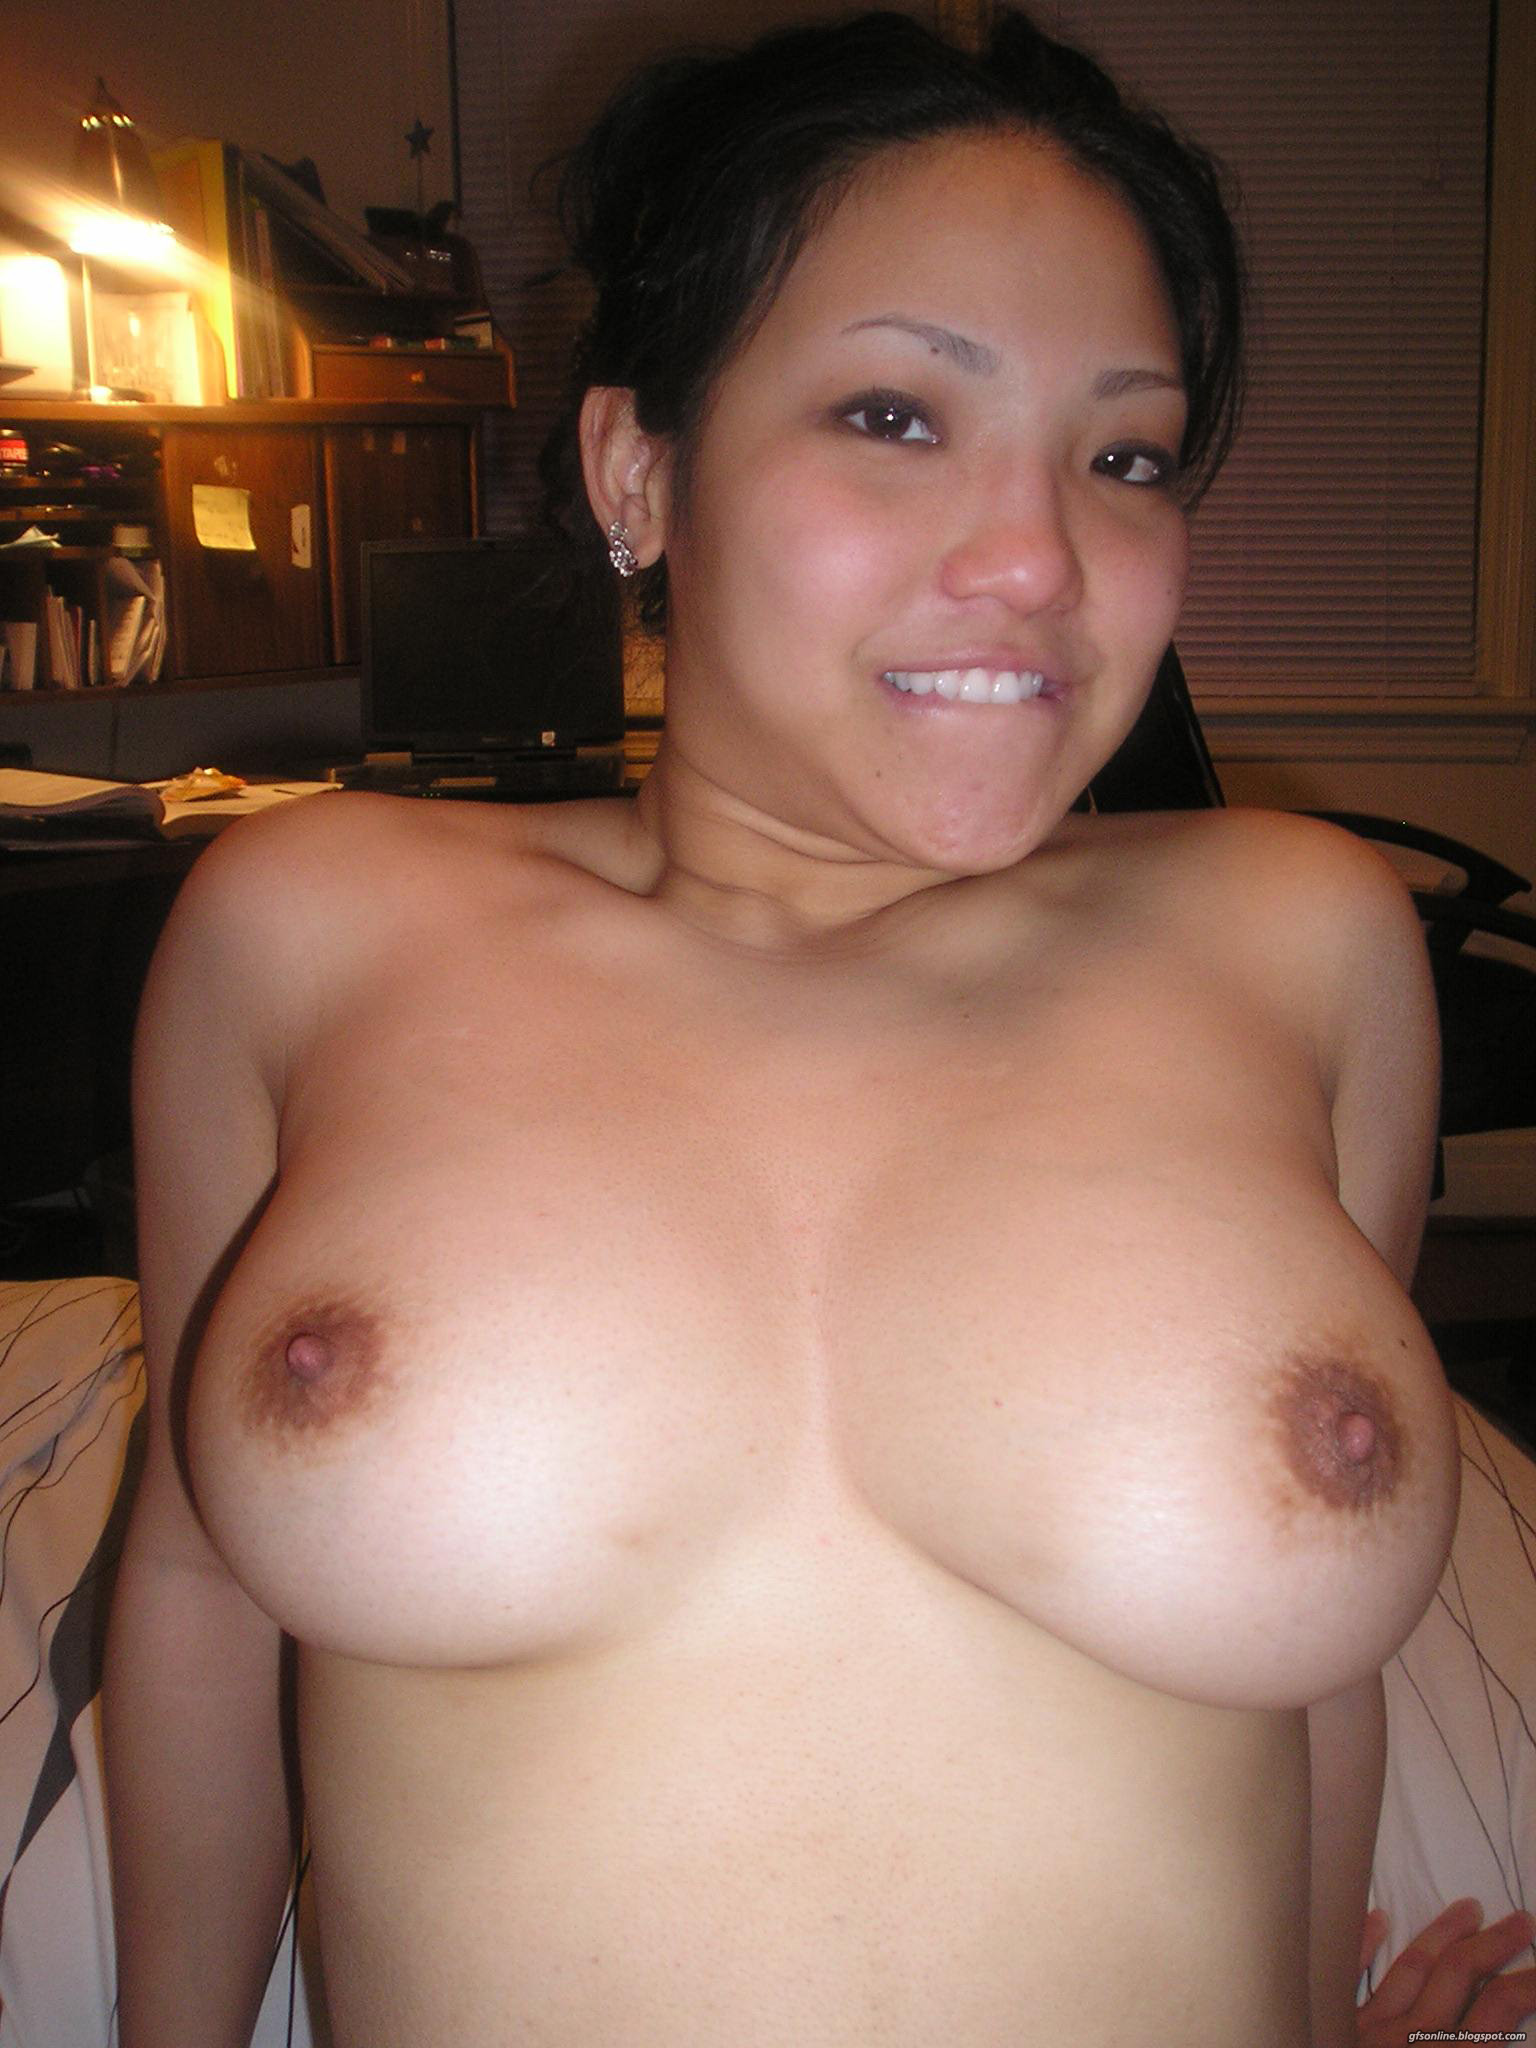 Hot mom big boob asian nudes